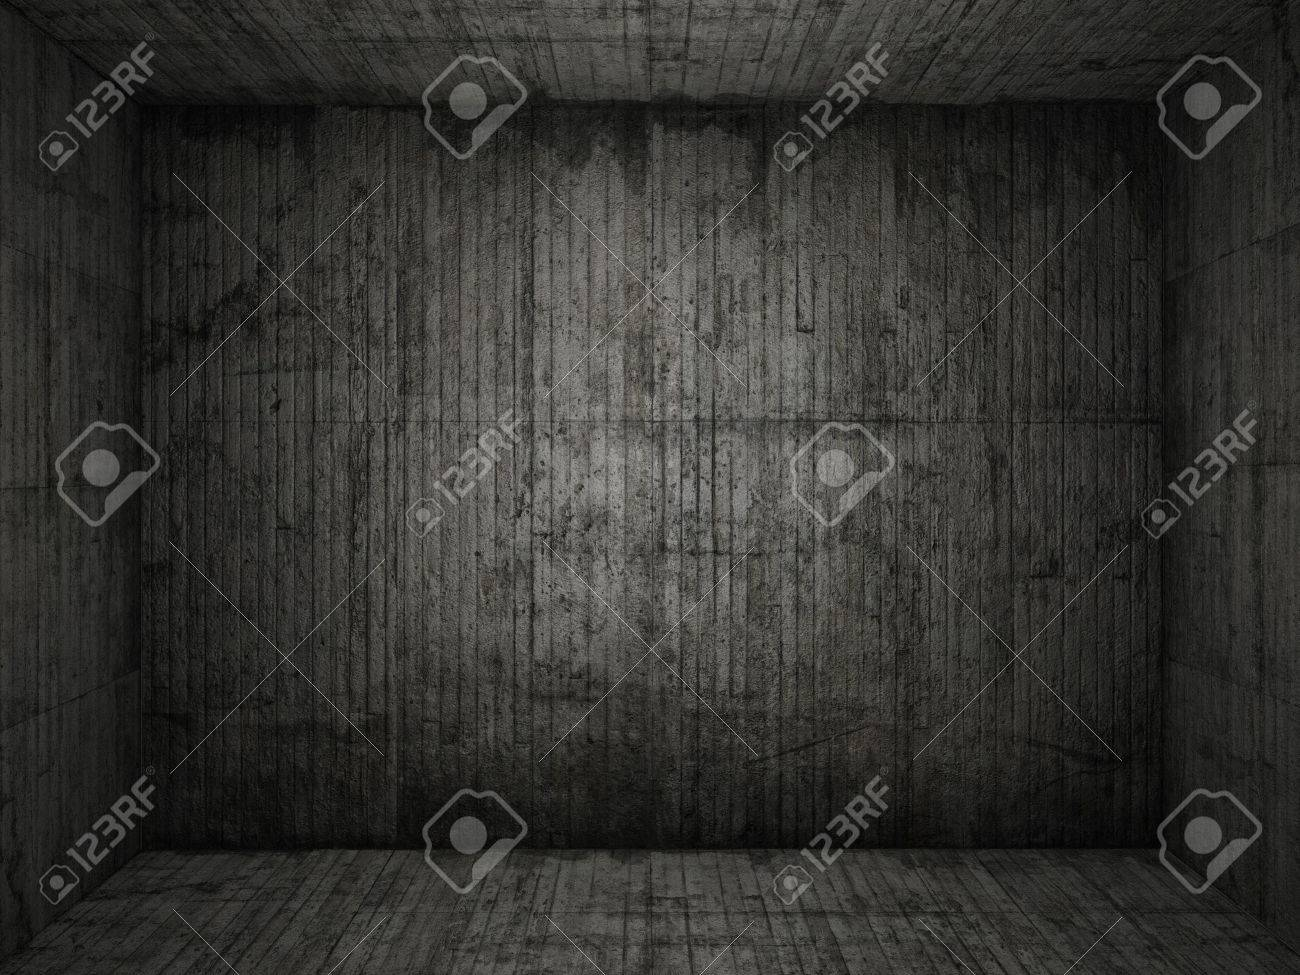 Very grungy and dark concrete room for use as background Stock Photo - 6356095